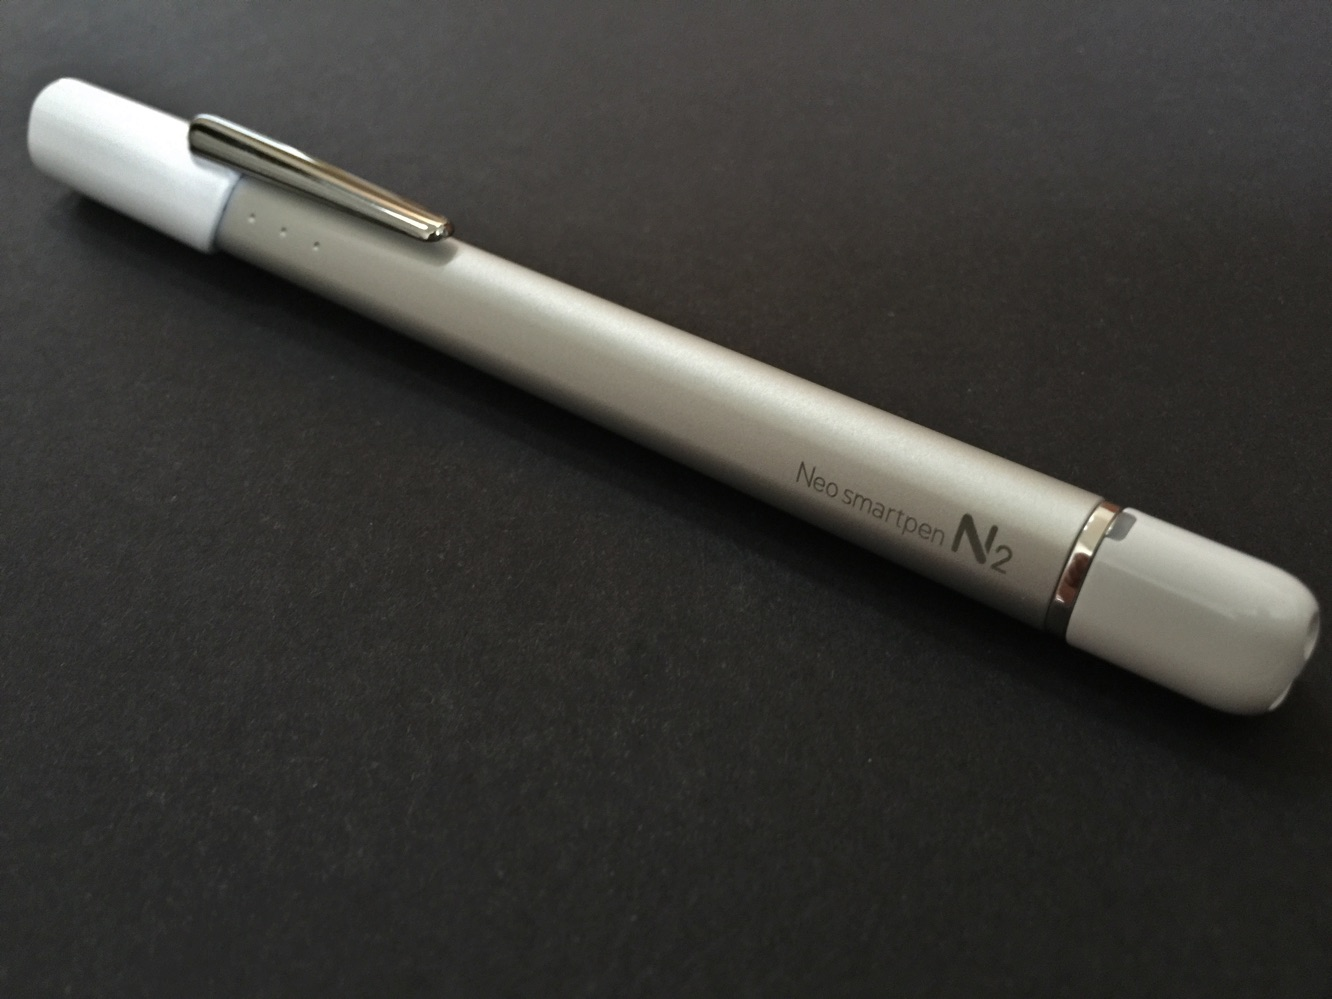 Review: NeoLAB Convergence Neo smartpen N2